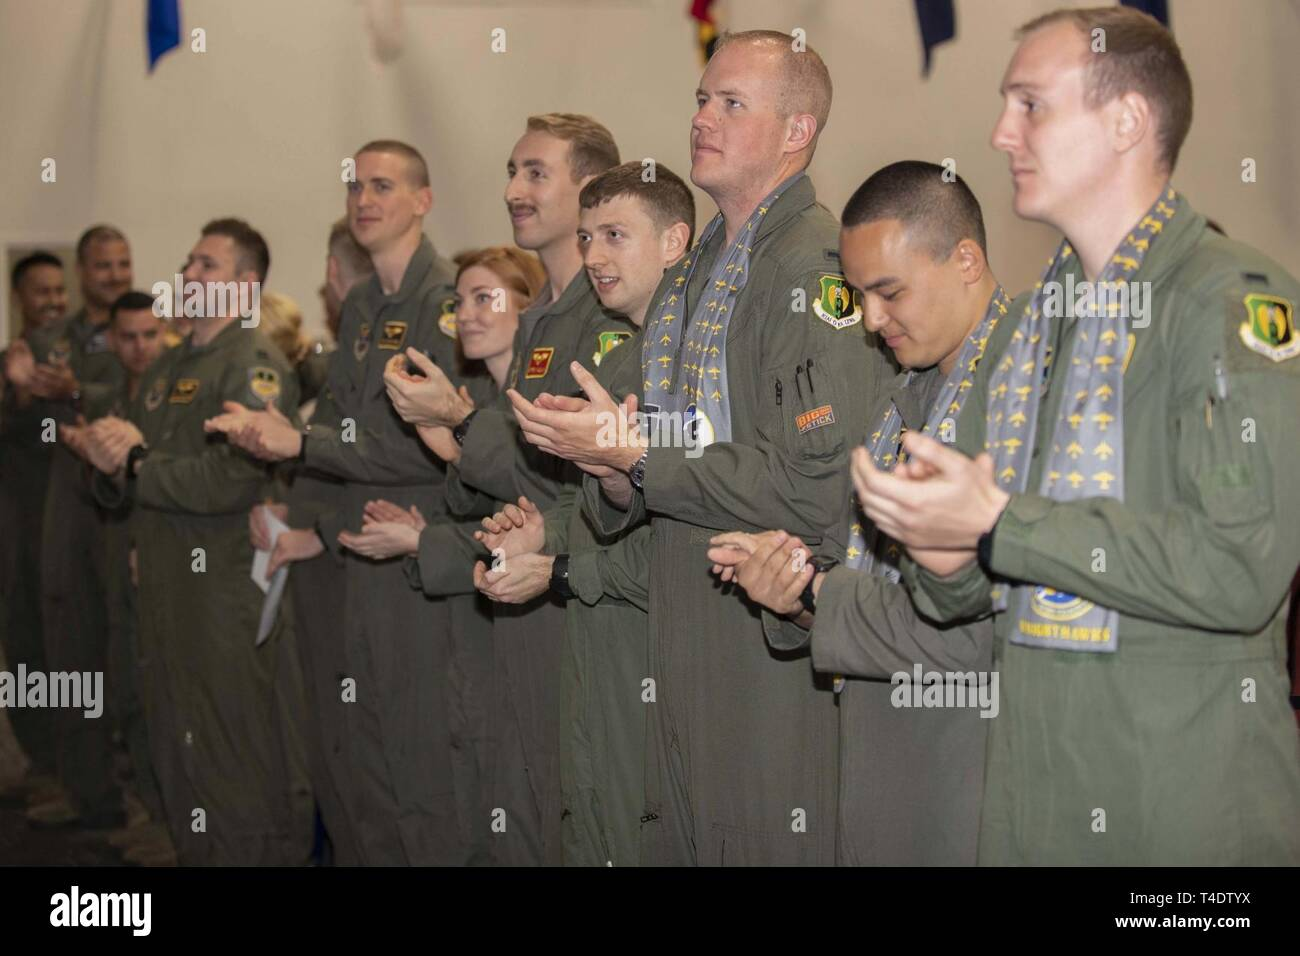 Members of Formal Training Unit Class 18-02 applaud at the end of